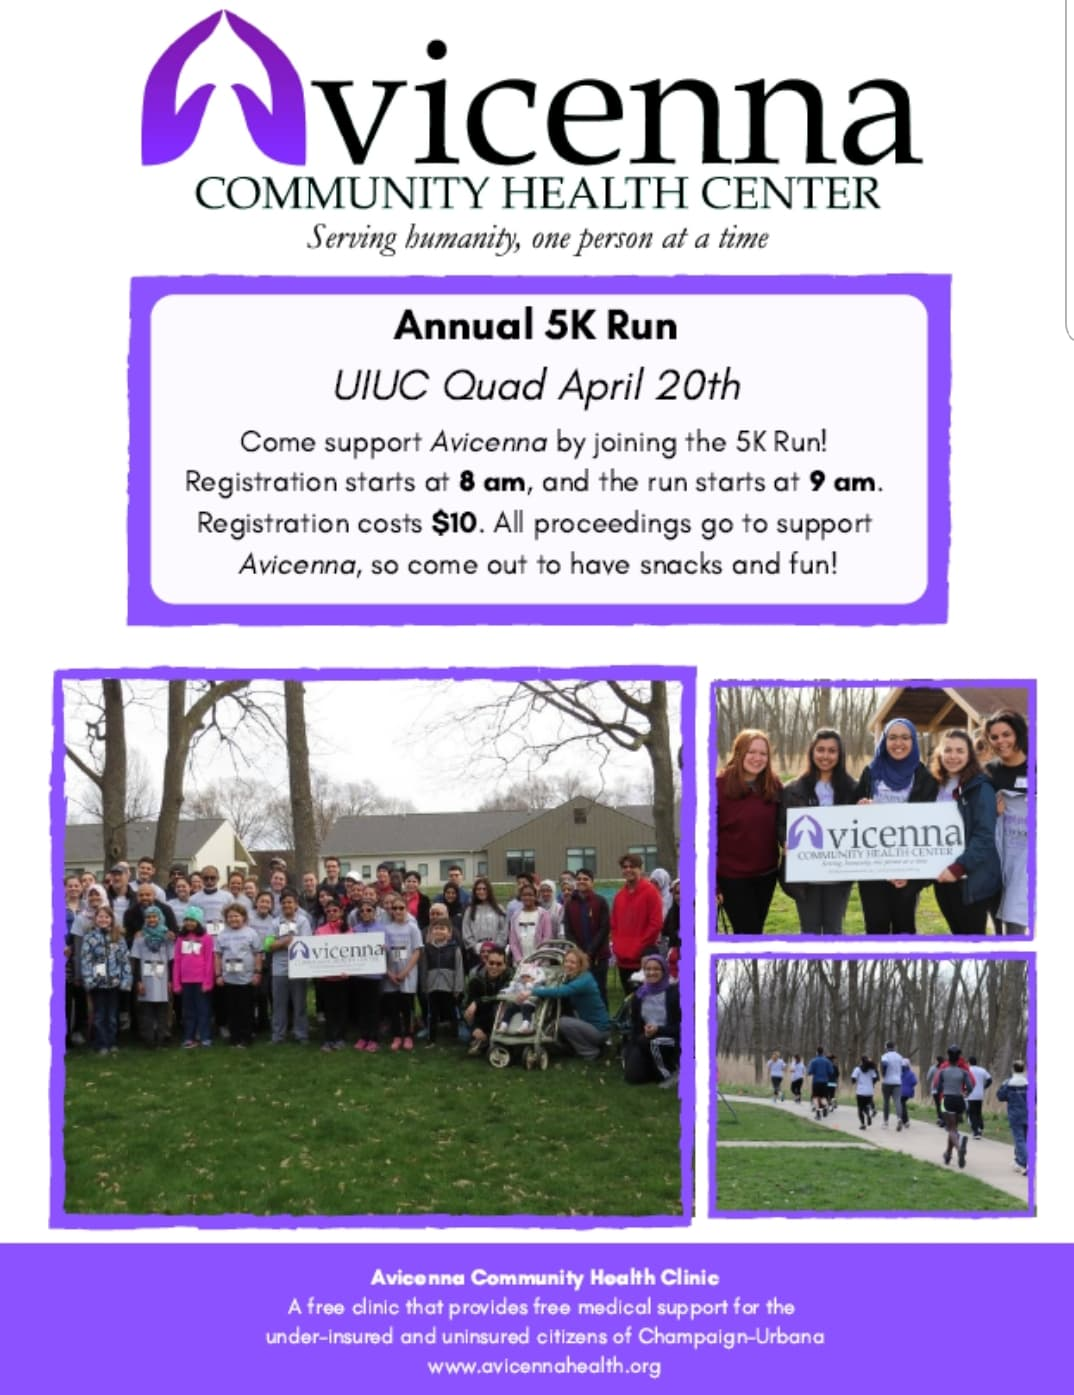 "Register Here - It's that time of the year!! Avicenna Community Healthcare Center will be hosting its Annual 2019 5K Run at the University of Illinois Quad on Saturday, April 20th! Registration will be at 8am and the race will start at 9am. Come join us as we will fundraise and promote awareness for the clinic.Refreshments will be provided and participants may choose to either walk or run the 5K. In addition, there will be an associated health and wellness fair.Event date: April 20th, 2018Event location: UIUC Illini Union Main Quad1401 West Green StreetUrbana, Il 61801Time: Check in begins at 8:00 am and race starts at 9:00am sharpTransportation: There are several options for free parking on the weekends near the Illini Union. Lot D6 on 407 S Goodwin Ave, Urbana, IL 61801Lot B7 on Nuclear Radiations Laboratory, Urbana, IL 61801Lot C3 on 601 E John St, Champaign, IL 61820Lot C7 on 812 S 5th St, Champaign, IL 61820,St. Mathew Street has free metered parking on the weekendsMain Library Parking Lot is free on the weekends at 1408 W Gregory Dr. Urbana, Il 61801All of these locations are within a 10 min walking distance to the union!Registration is 10$. Please fill out the Registration Form below:https://docs.google.com/forms/d/e/1FAIpQLSe_19gFARflMkq58fy4yEh7_xfVNyO3yMXonc98743WCdQ_WQ/viewformWe accept venmo, paypal, cash.T-shirts are first come first served! We will also have a light bagel breakfast provided by Panera and Einstein's, as well as fun games and activities, prizes, and a Health Fair.Interested in just donating? You can easily Venmo the clinic @Avicenna_Health and caption it as ""Donation"".Spread the word! Hope to see you there!"